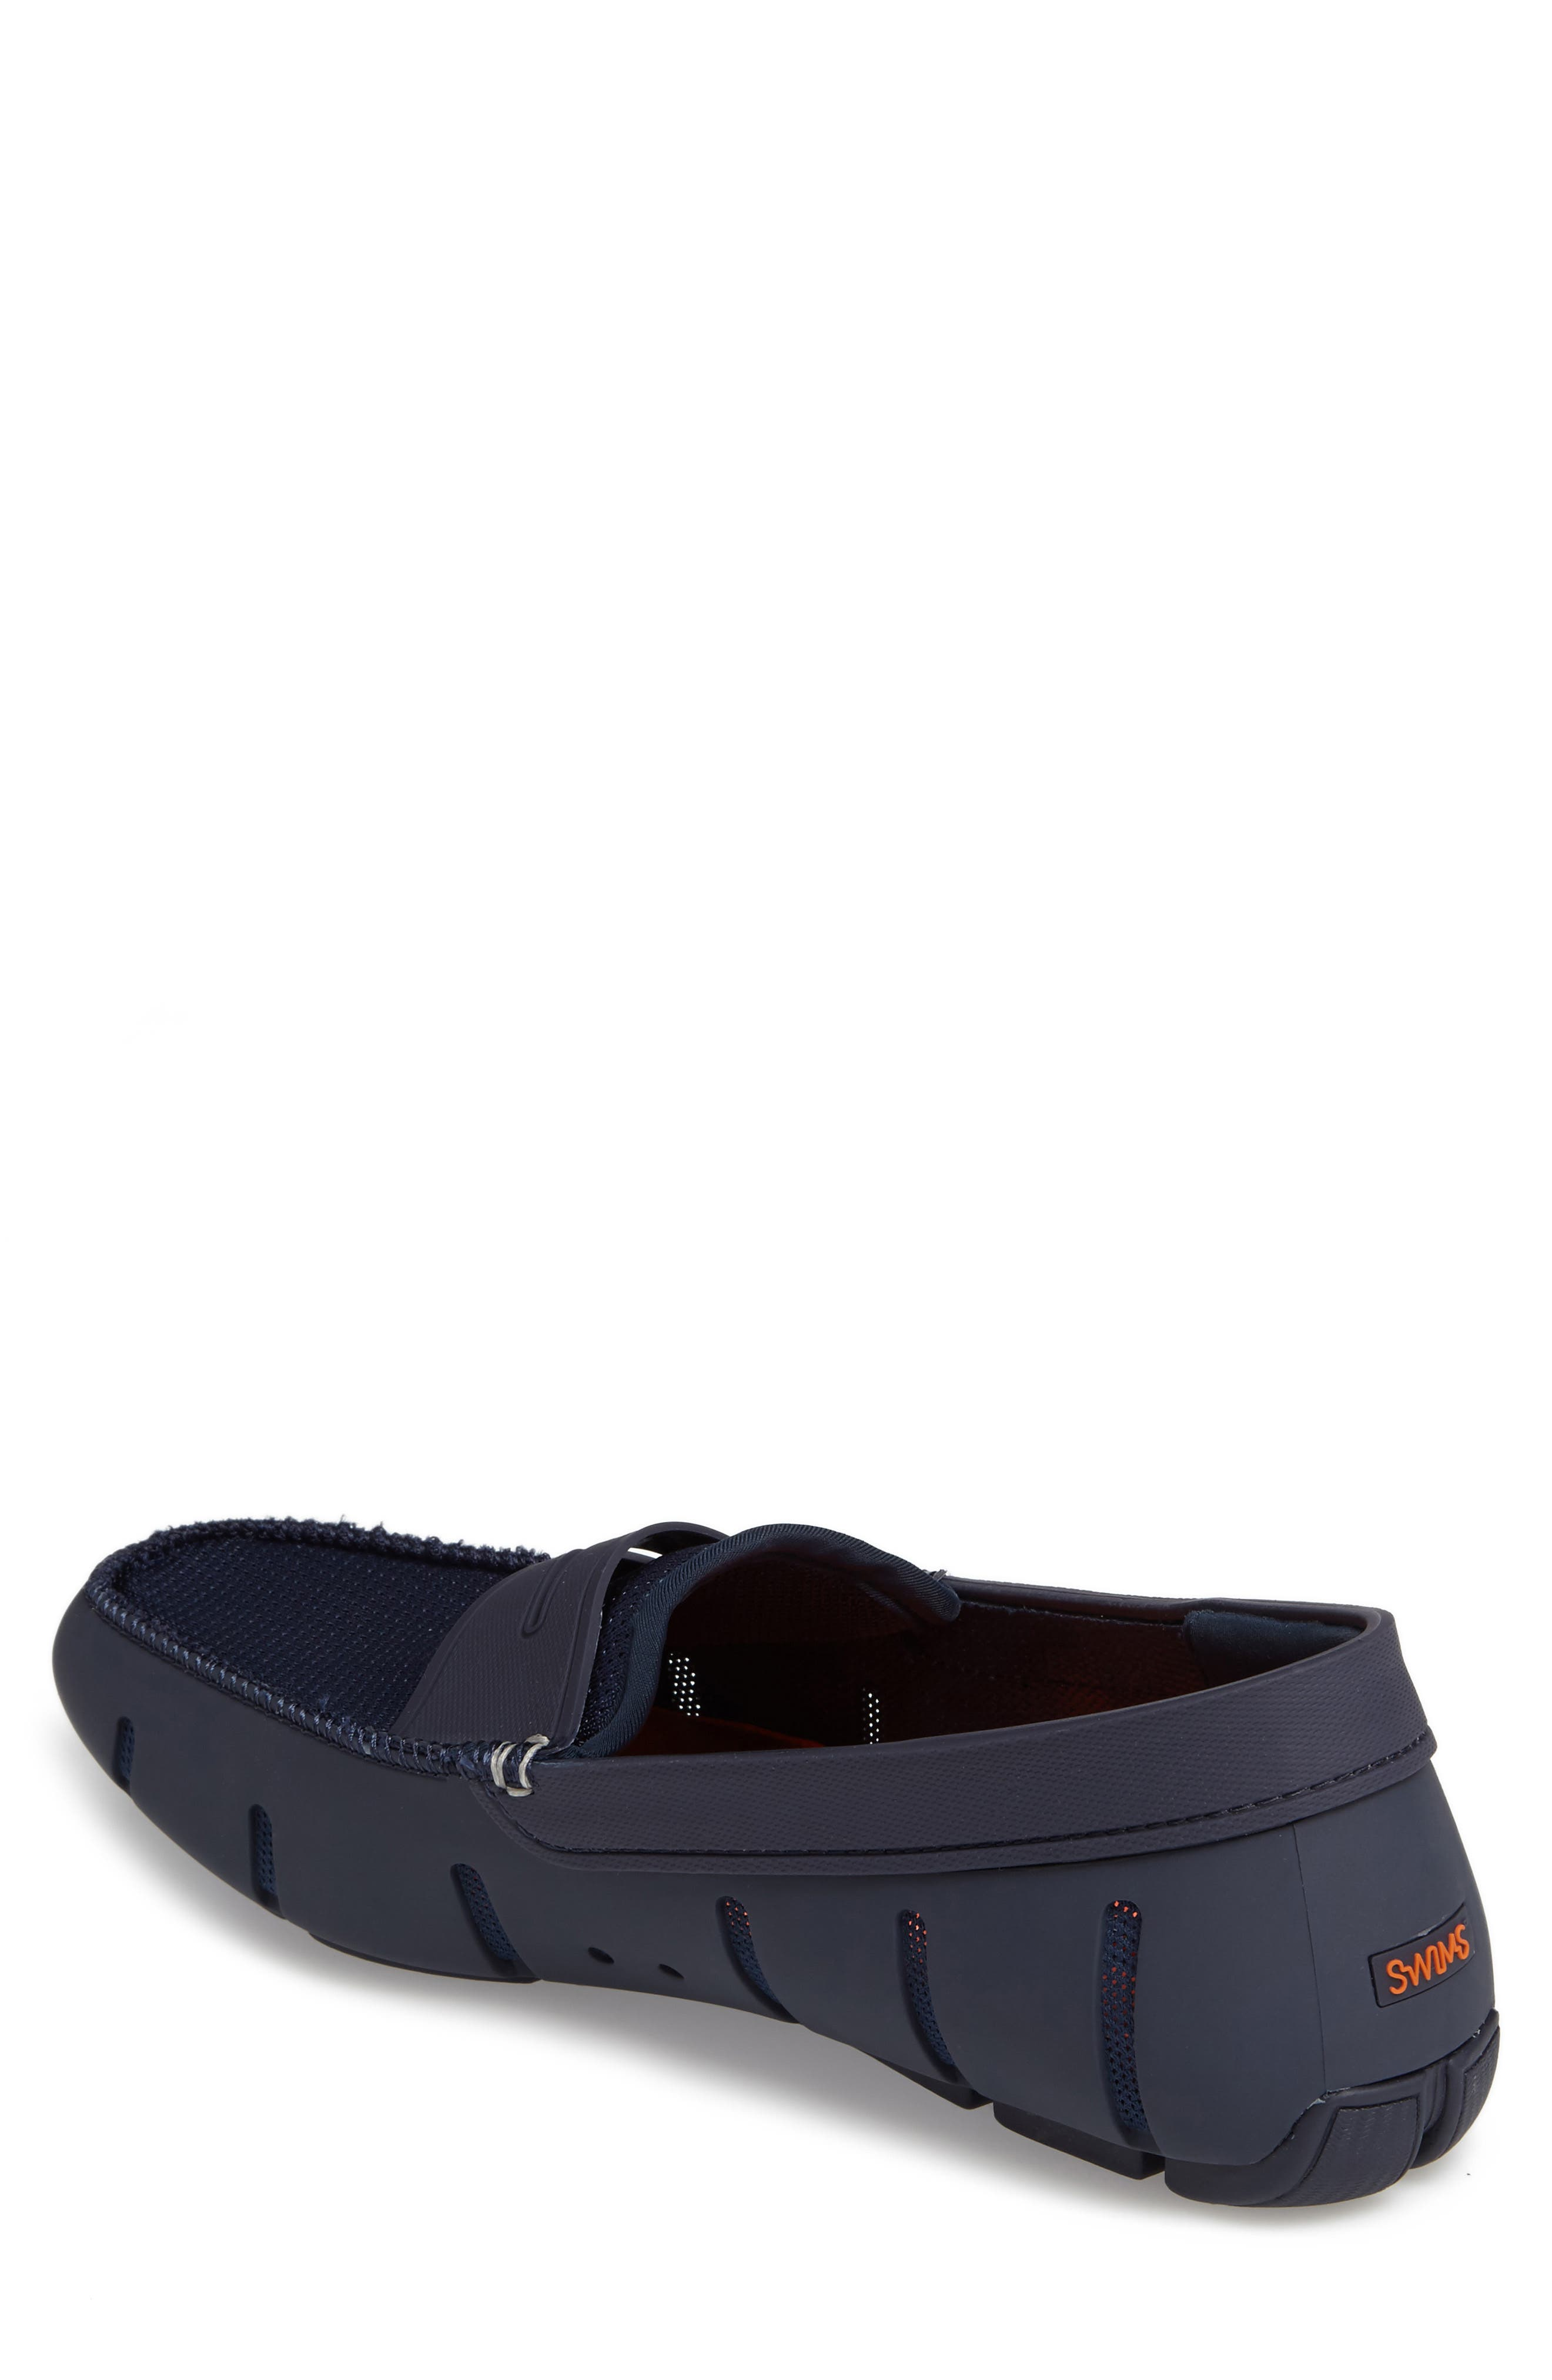 Penny Loafer,                             Alternate thumbnail 2, color,                             NAVY/NAVY